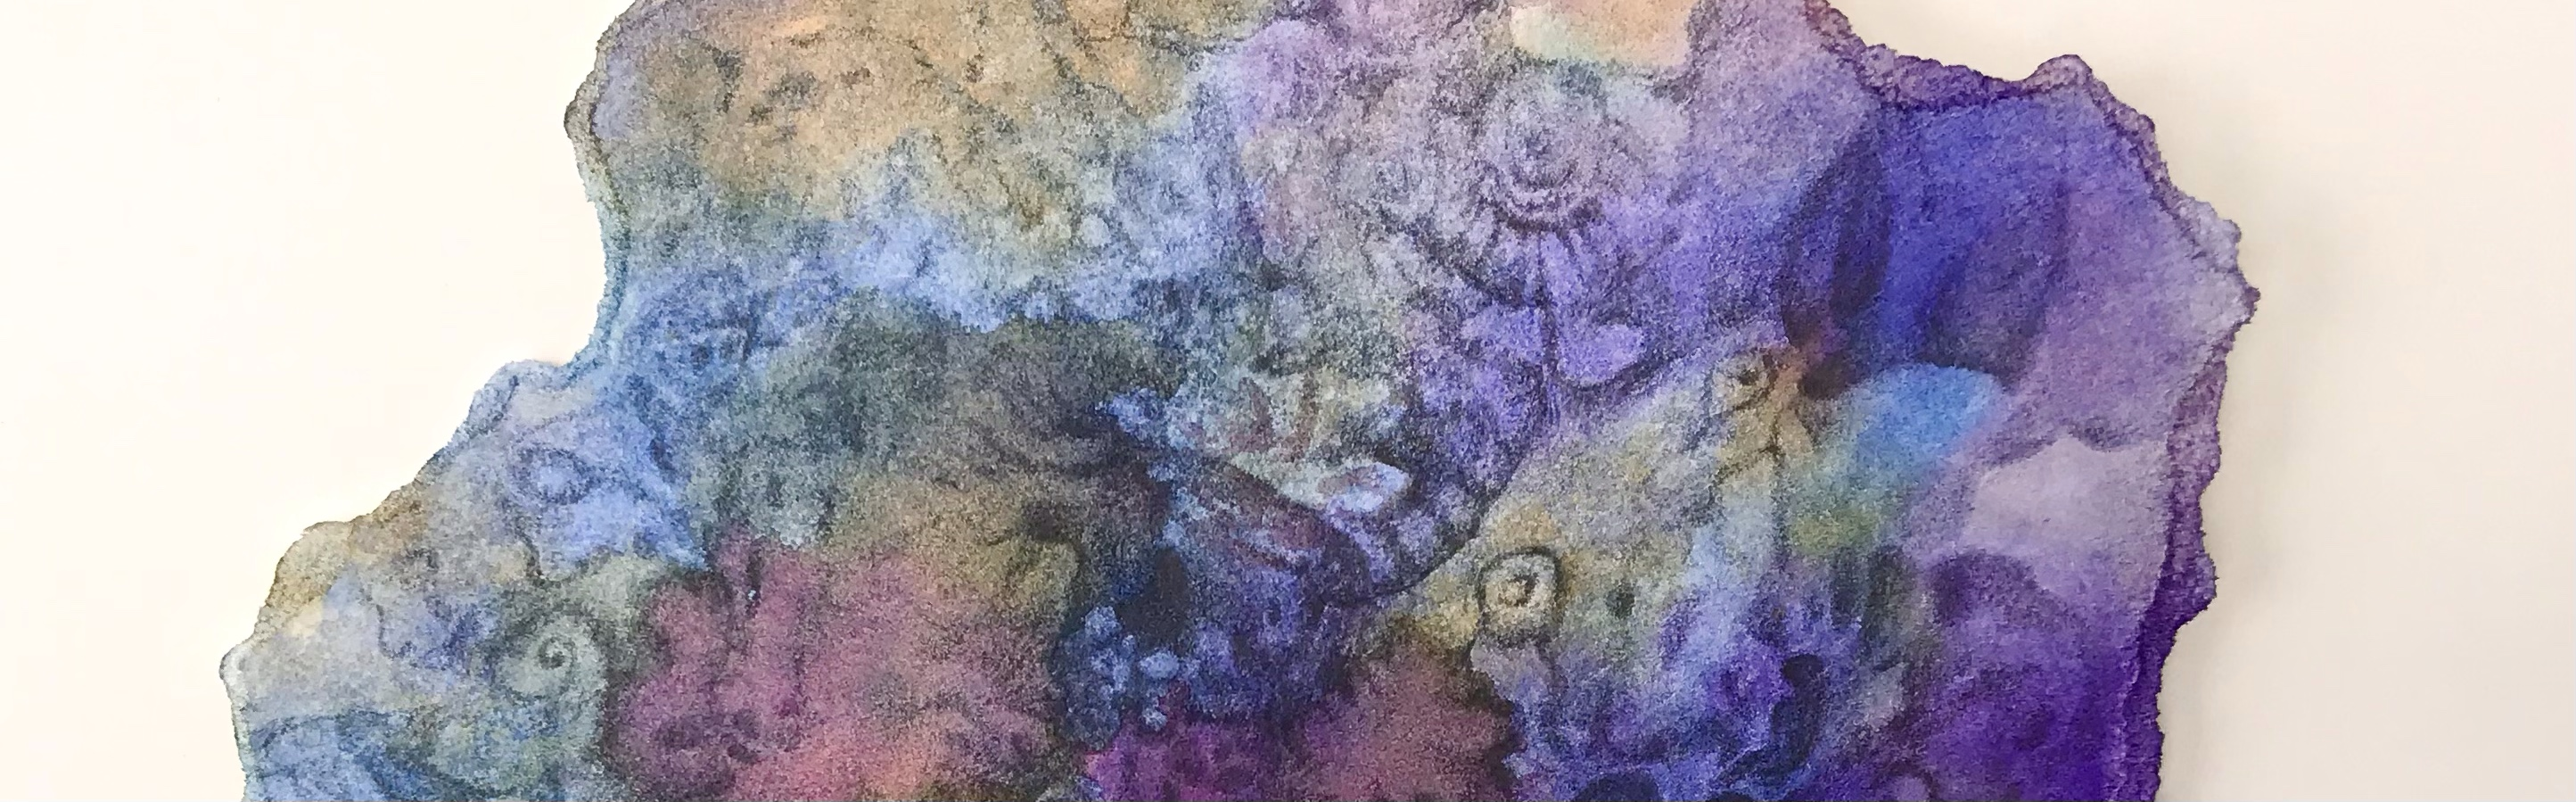 Detail of an abstract graphite drawing over a watercolor painting by MJ seal